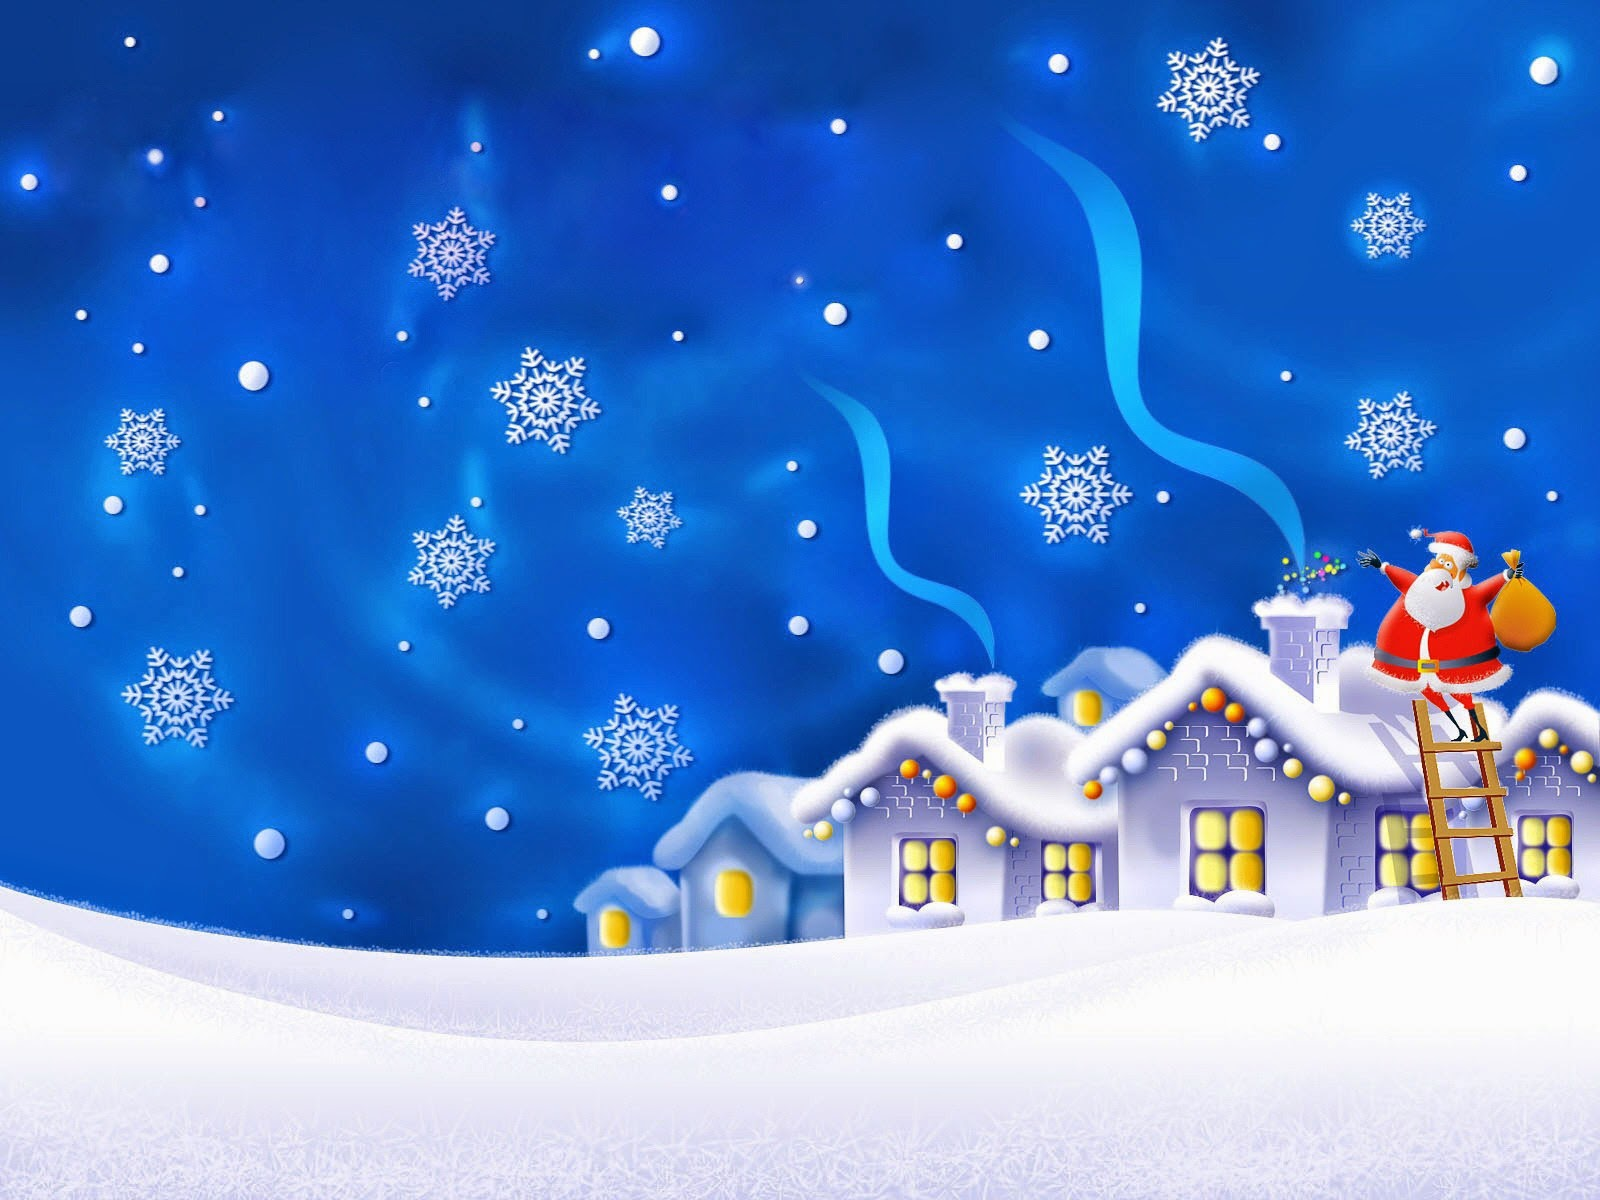 Santa-claus-climbing-house-using-ladder-to-reah-chimney-cartoon-animation-HD-wallpaper-for-kids.jpg